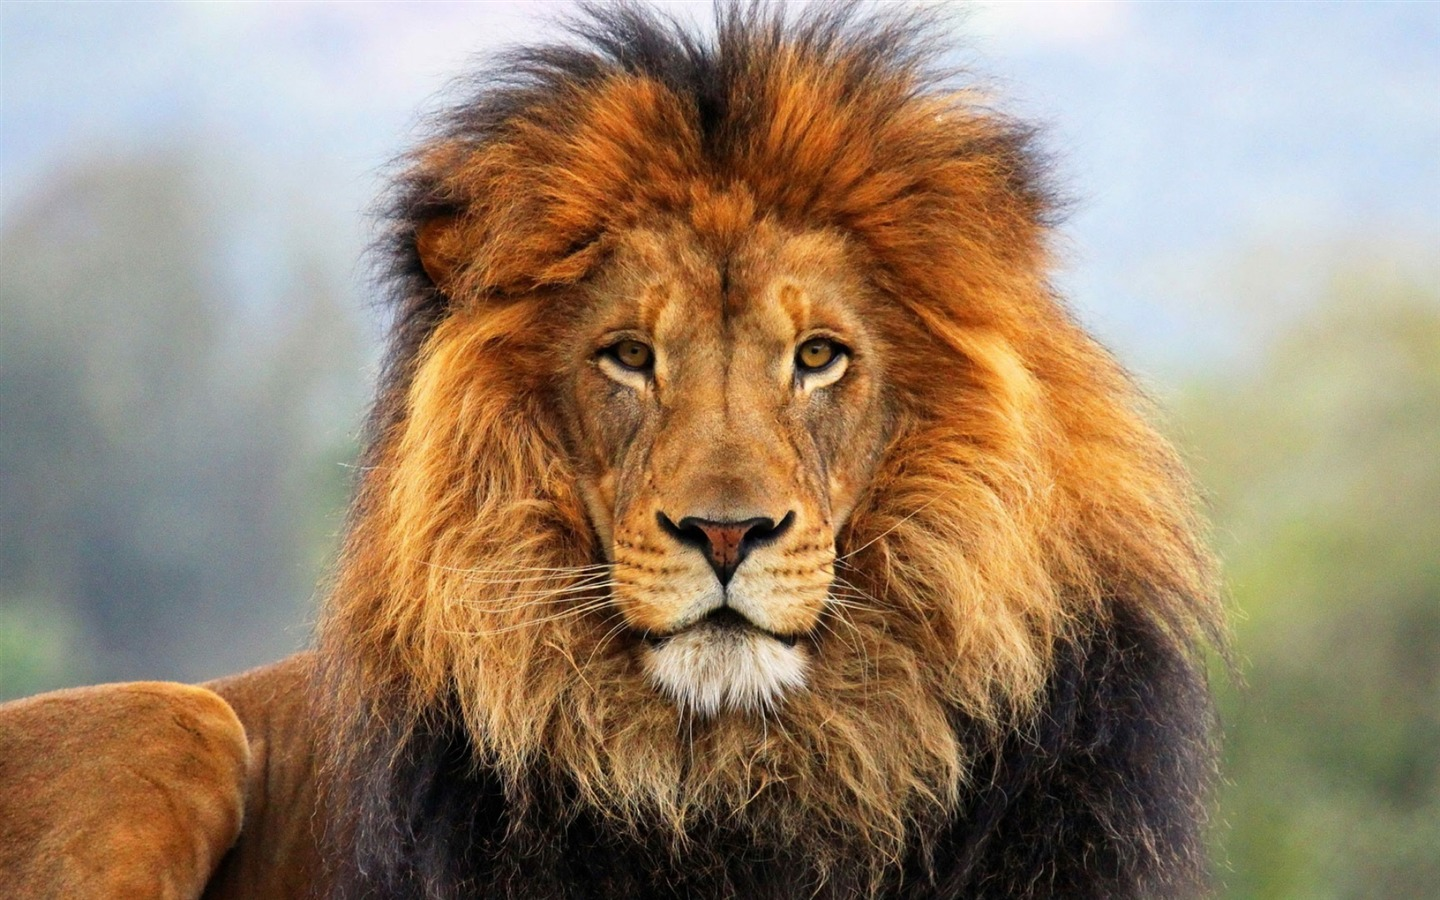 Cute Pet Animals Hd Wallpapers Face Eyes Lion Fur Mane Animal Hd Wallpaper Preview